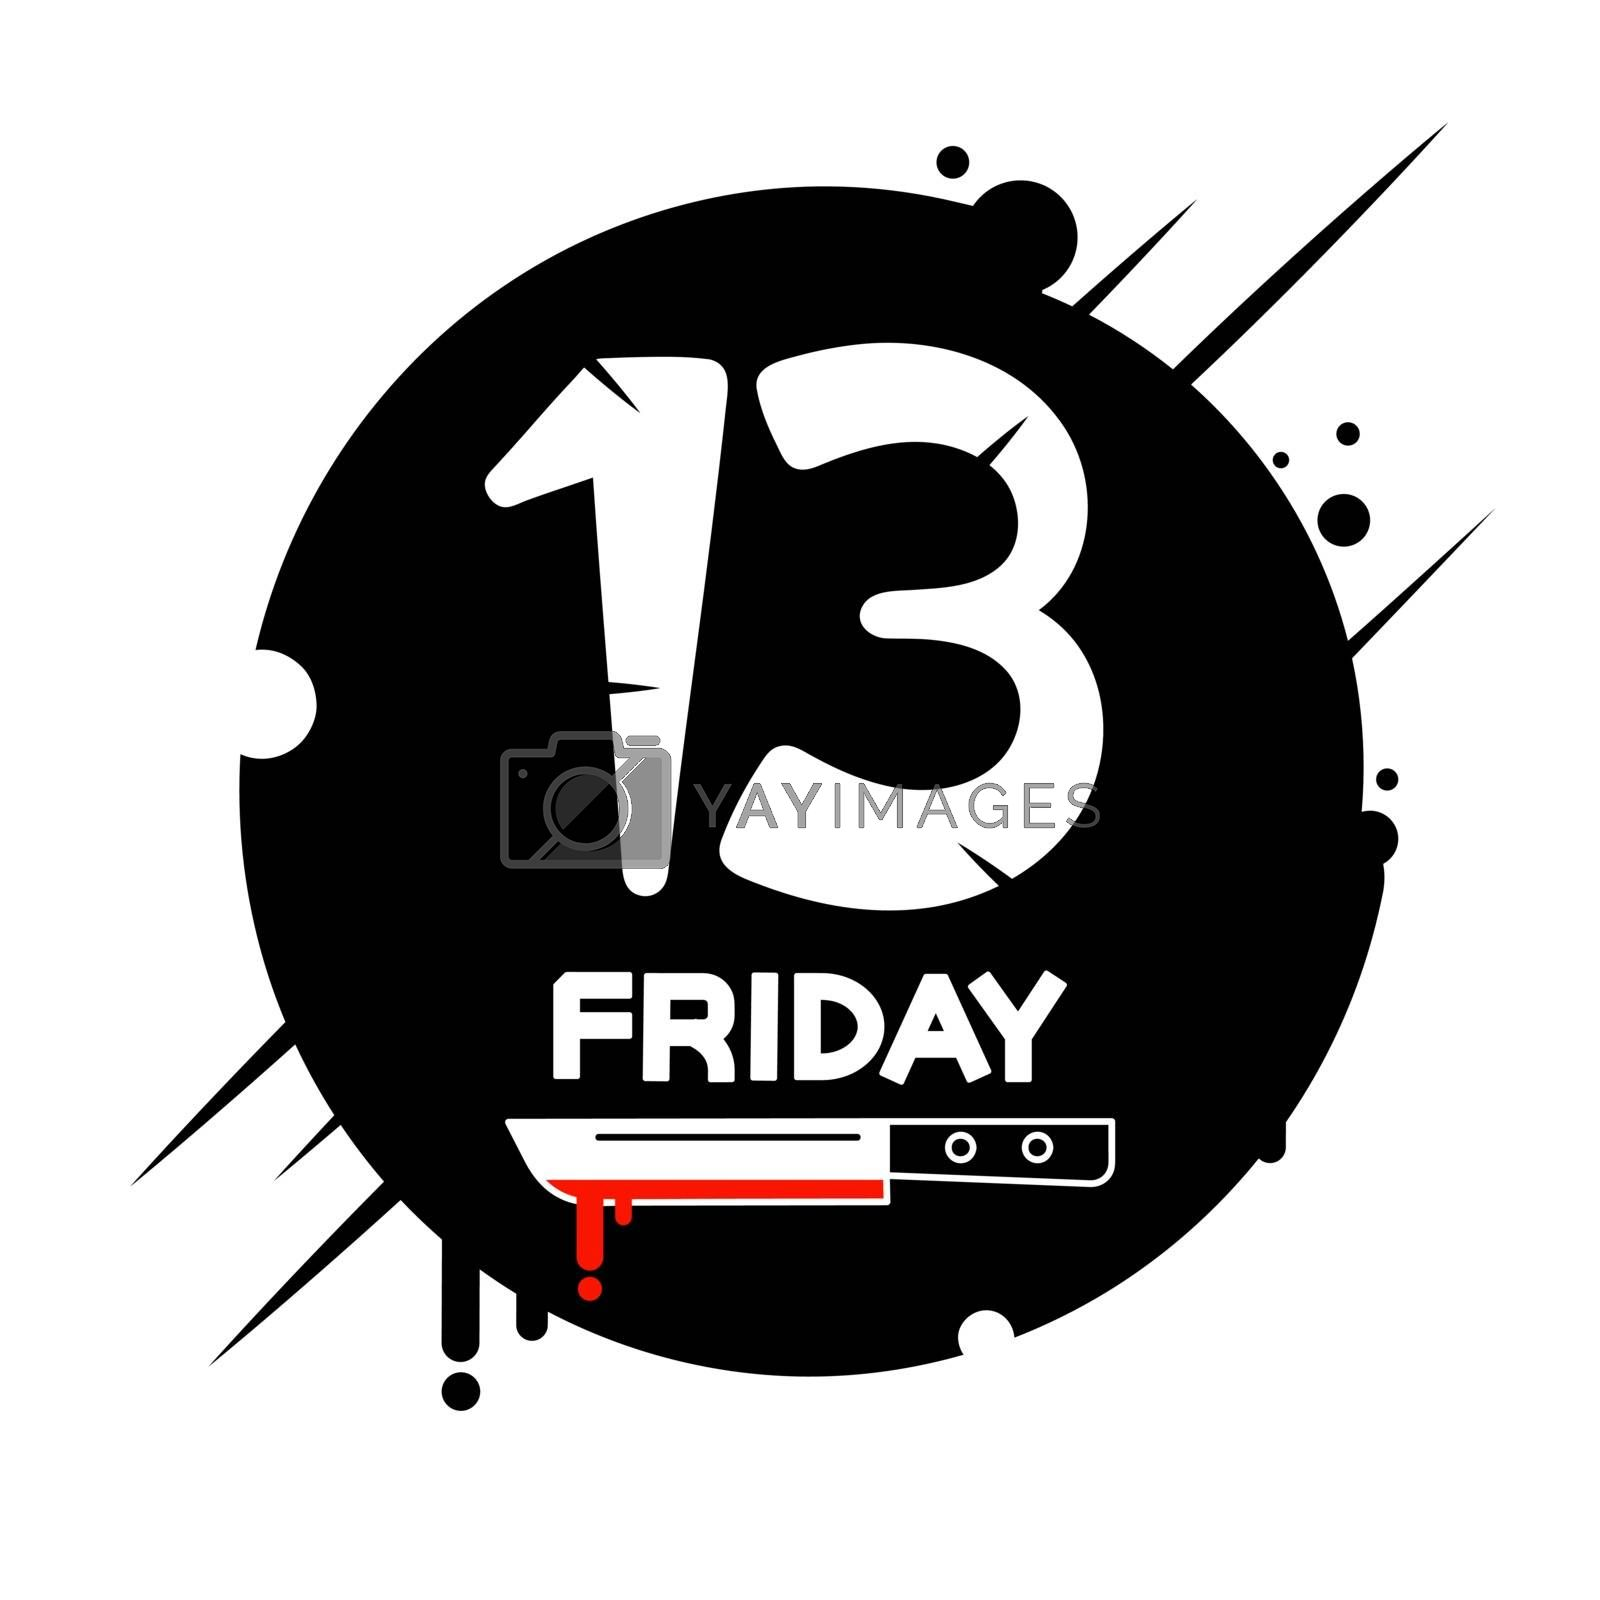 Friday the 13th calendar Vector Illustration Suitable For Greeting Card, Poster Or T-shirt Printing.